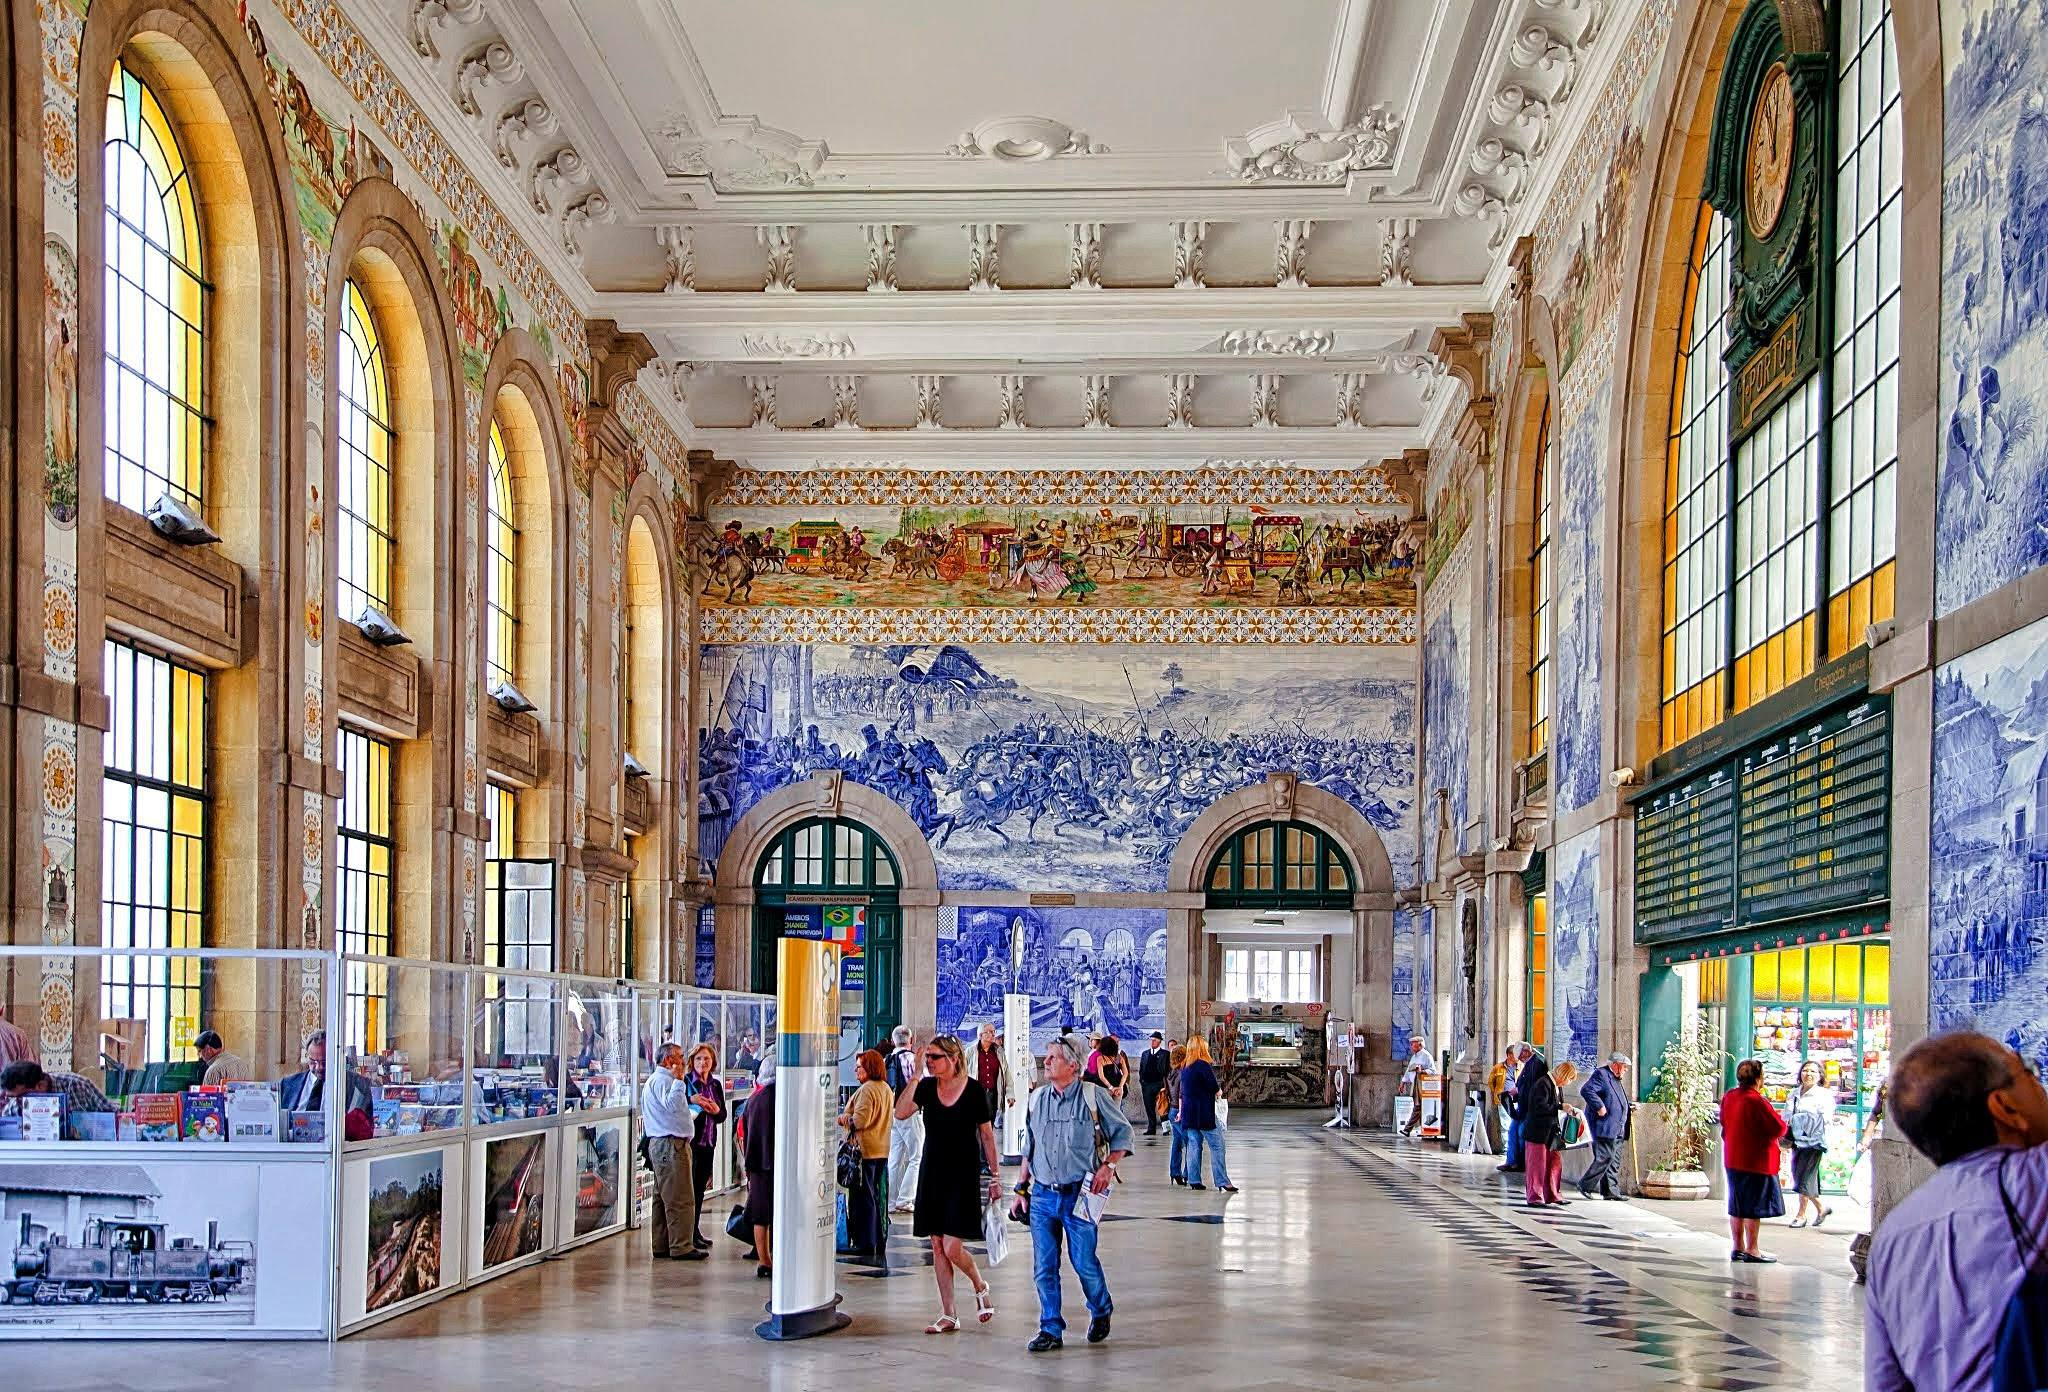 Best Architectural Design: Estação de São Bento what to do in porto What to do in Porto: 48 hours in the Undefeated city bento7